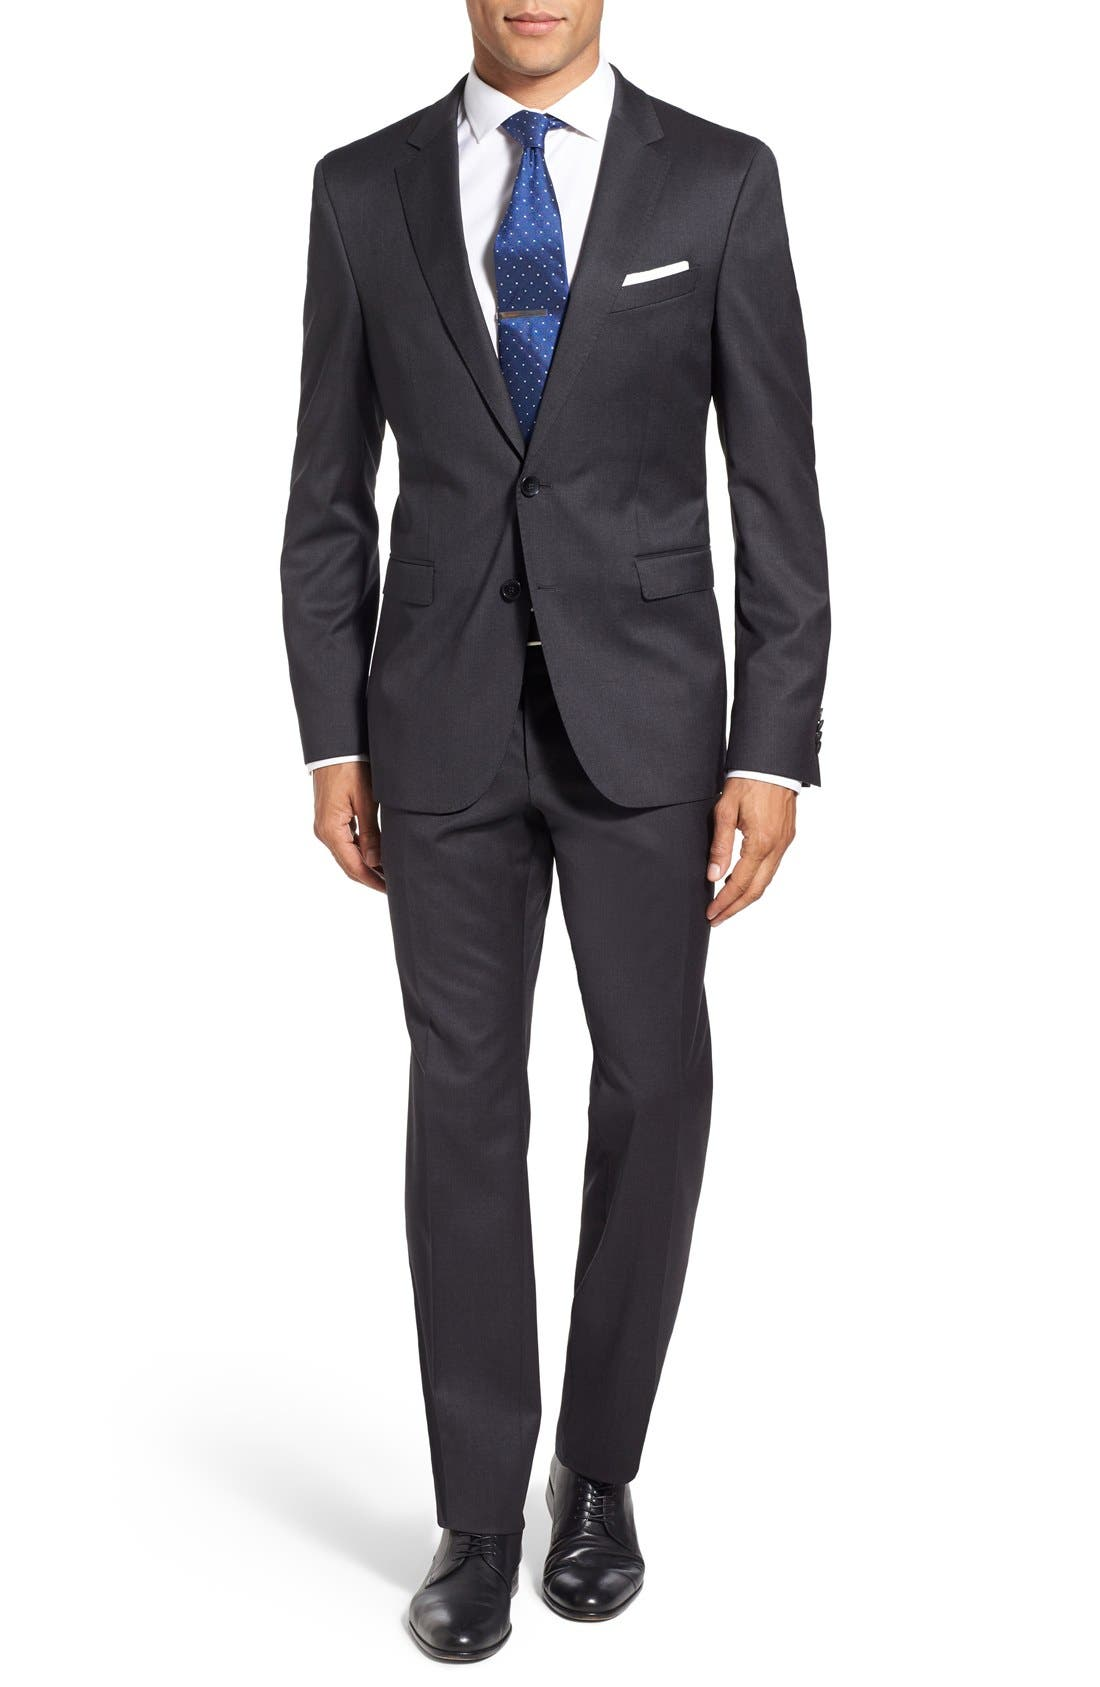 Main Image - BOSS 'Ryan/Win' Extra Trim Fit Solid Wool Suit